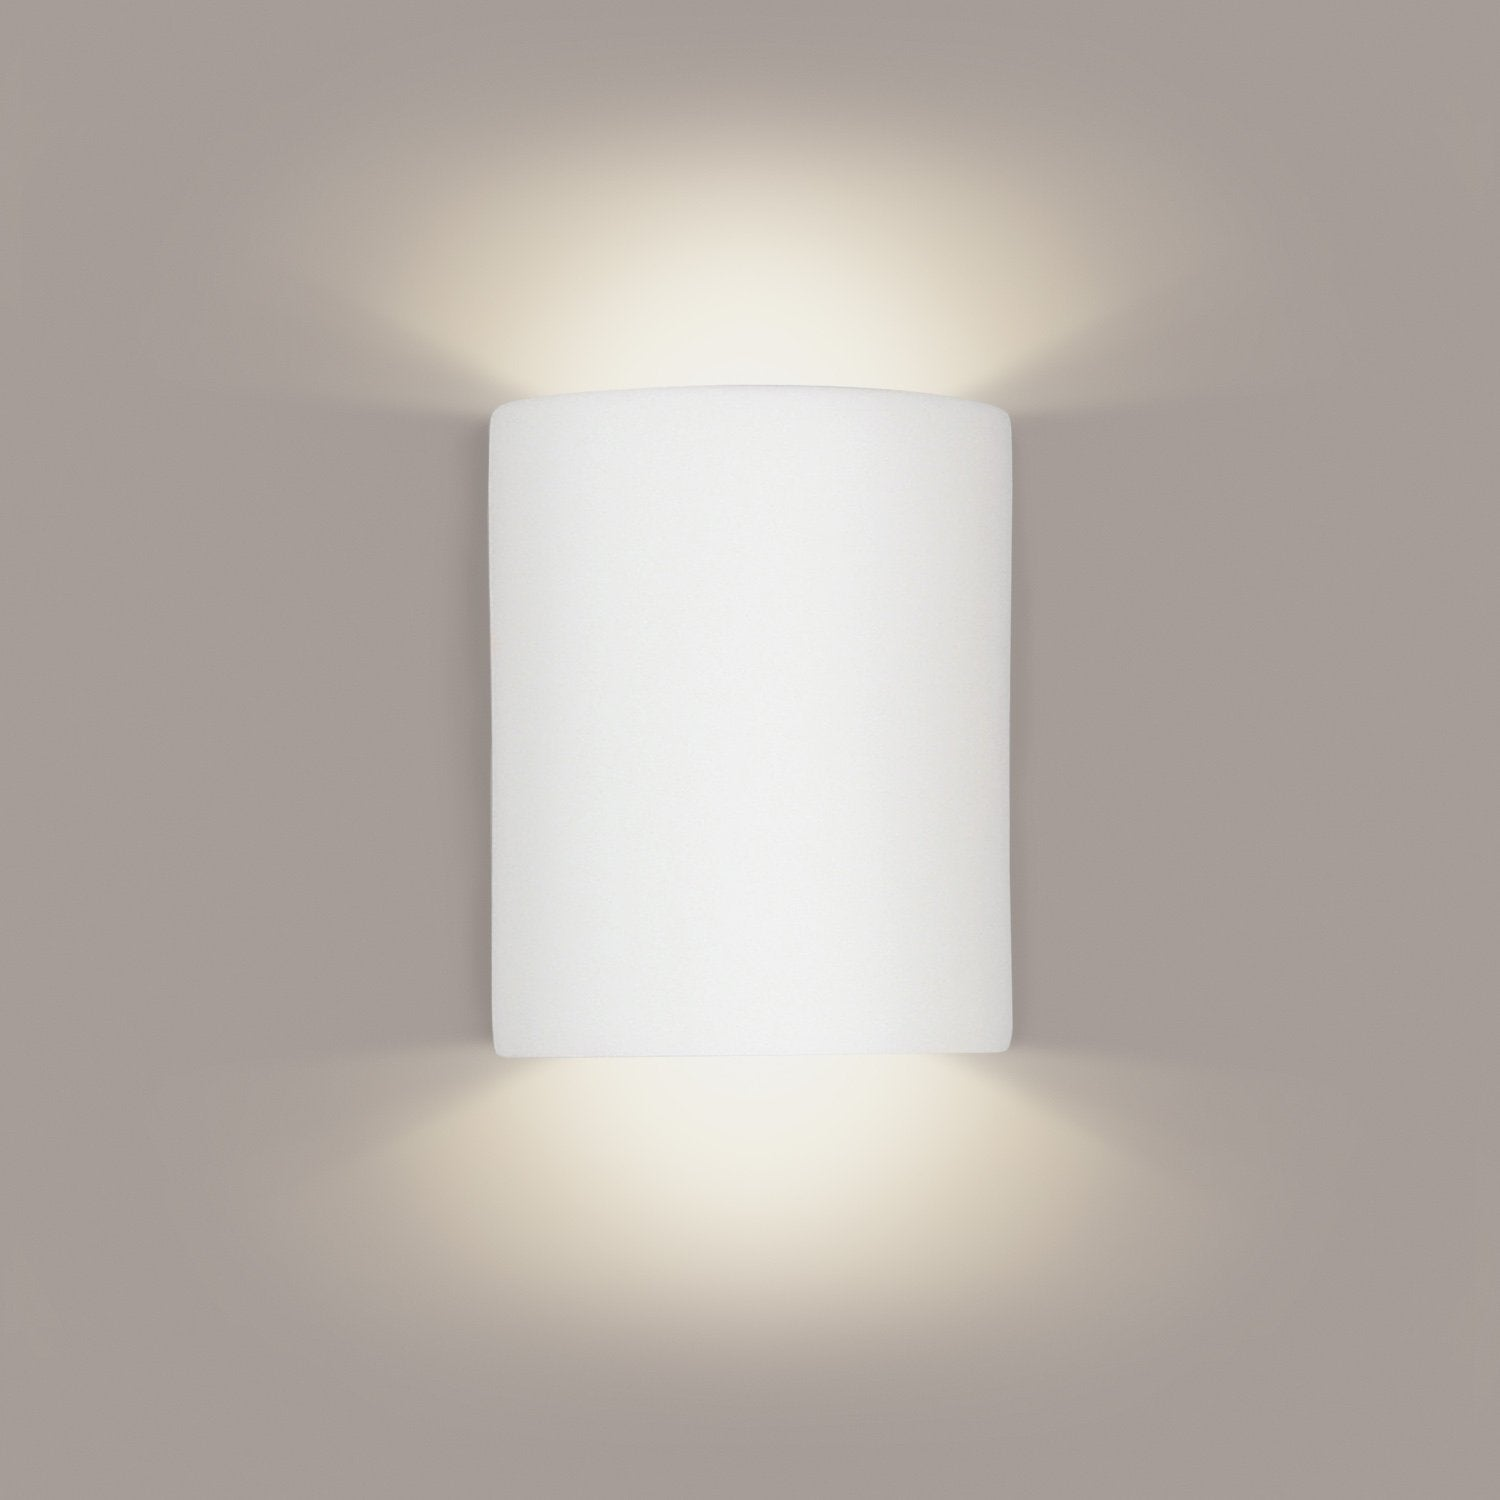 A19 212-CFL13-A32 Islands of Light Collection Tilos Cream Satin Finish Wall Sconce from A19